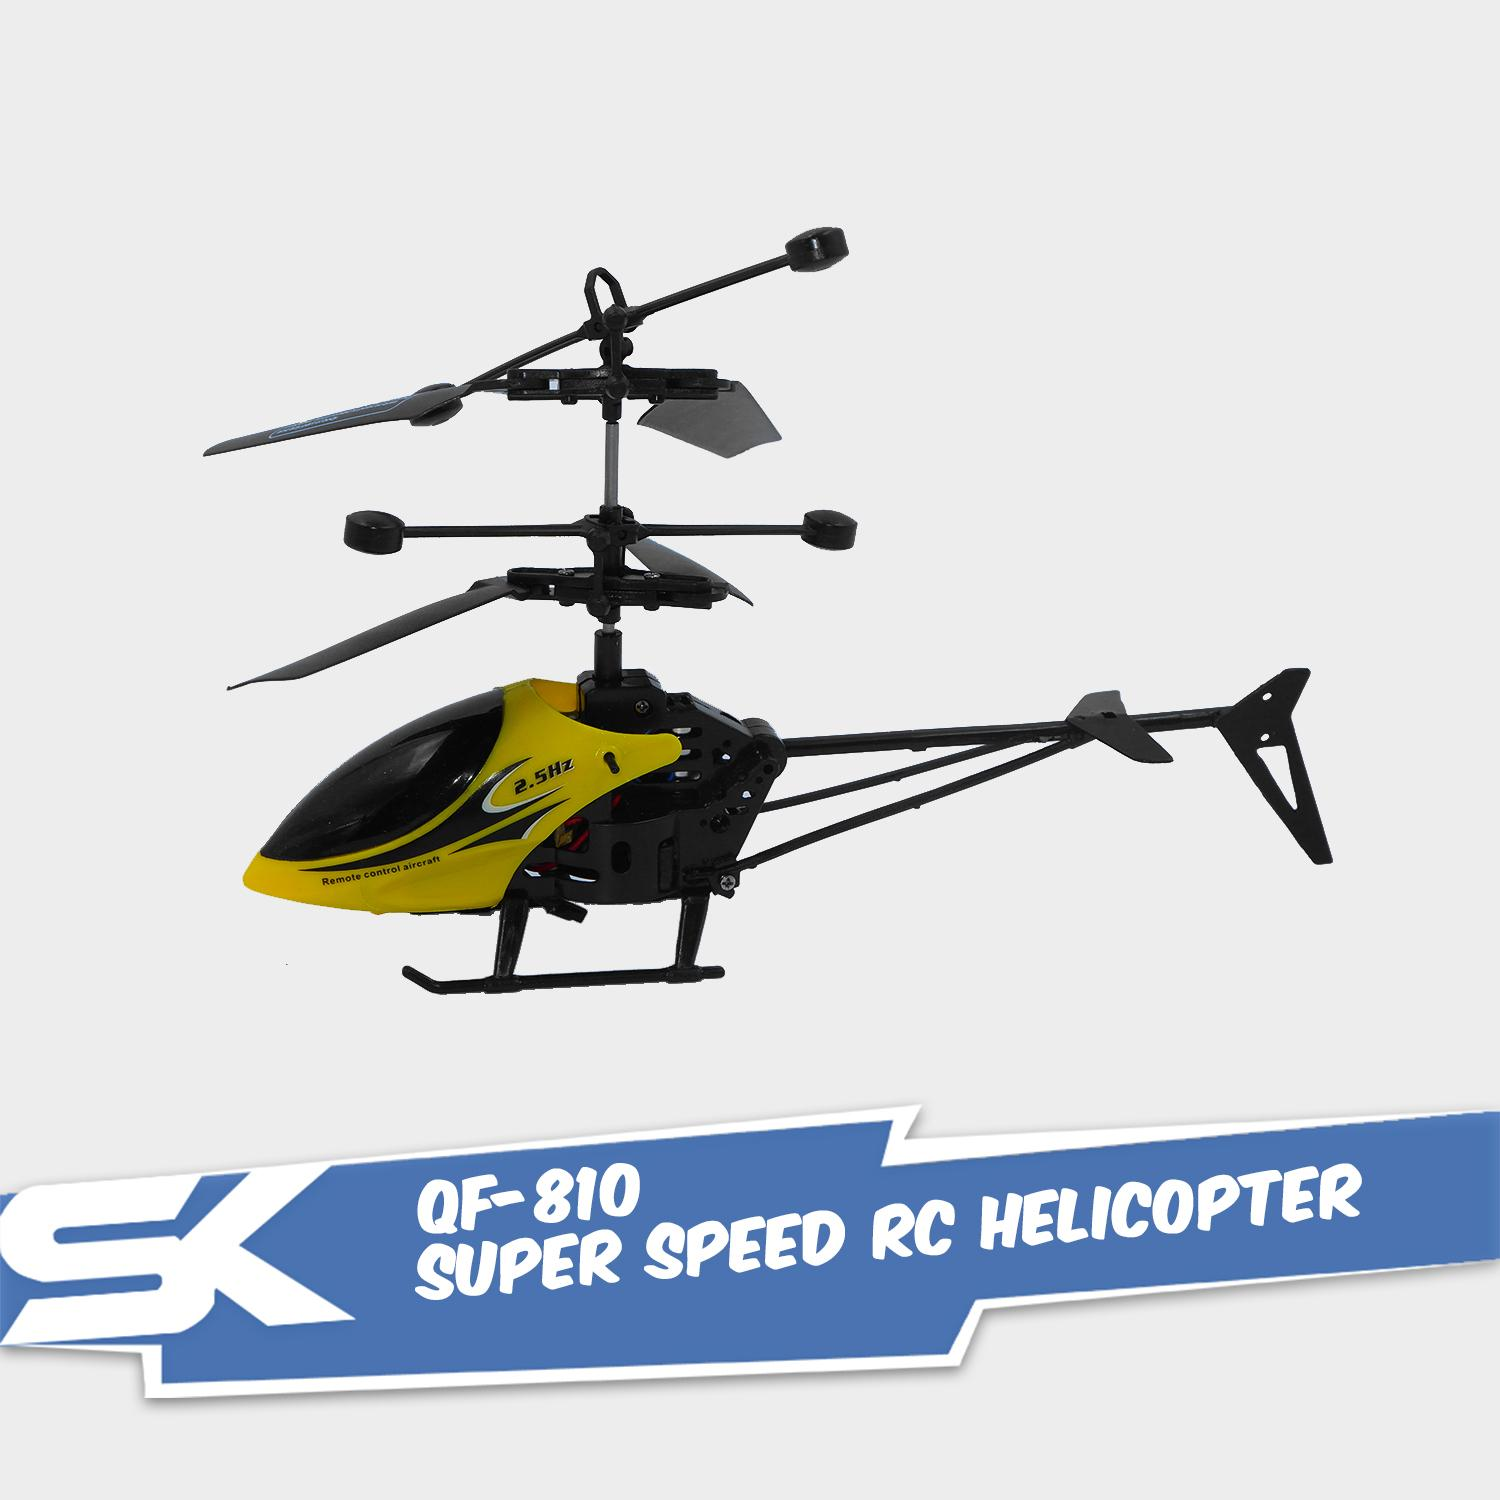 Qf-810 2.5 Super Speed Rc Helicopter By Sk Kids Republic.